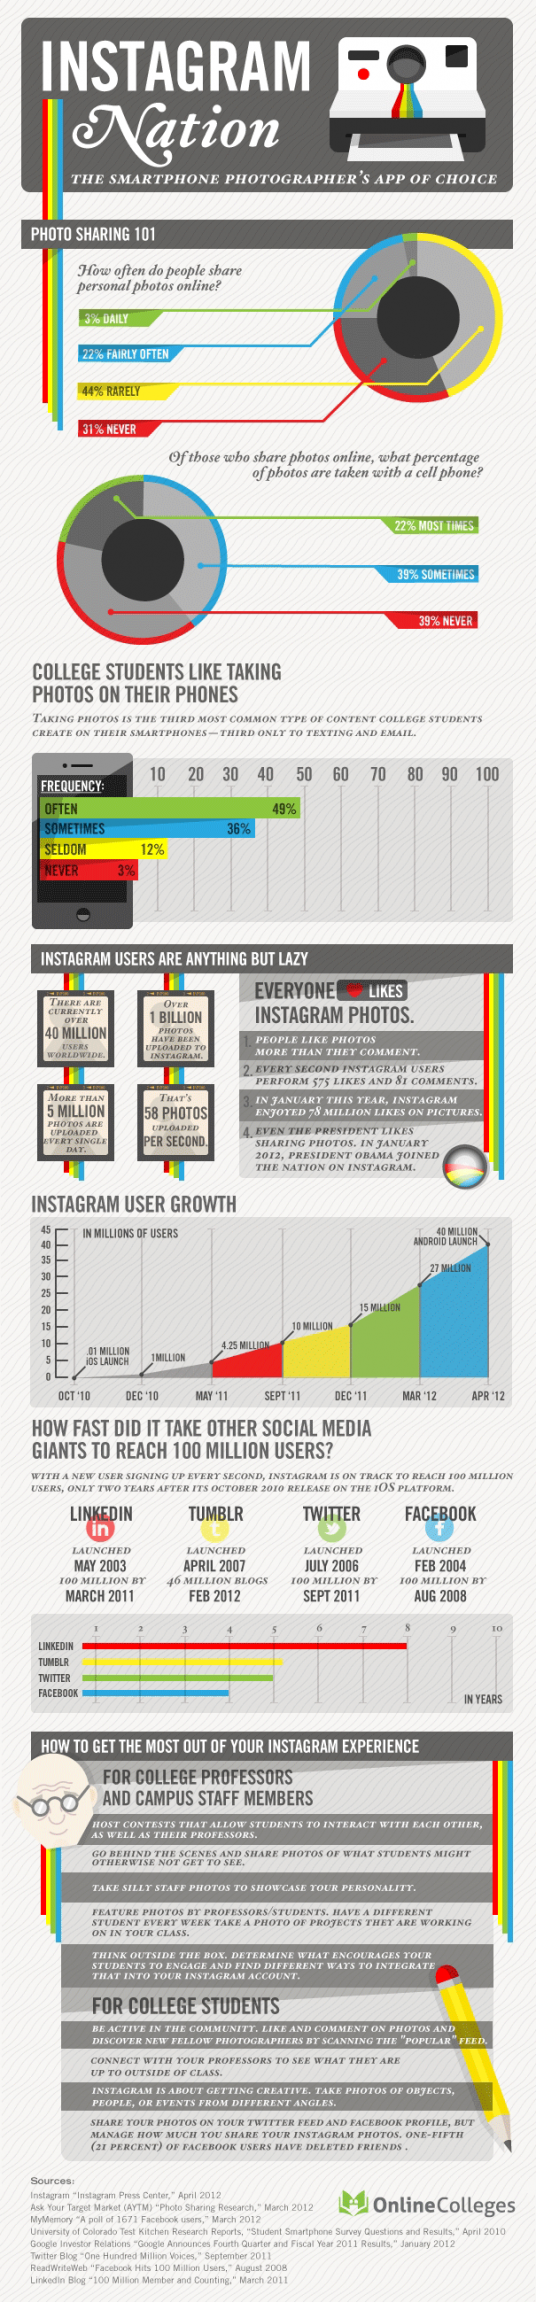 instagram-nation-infographic-e1336649868712